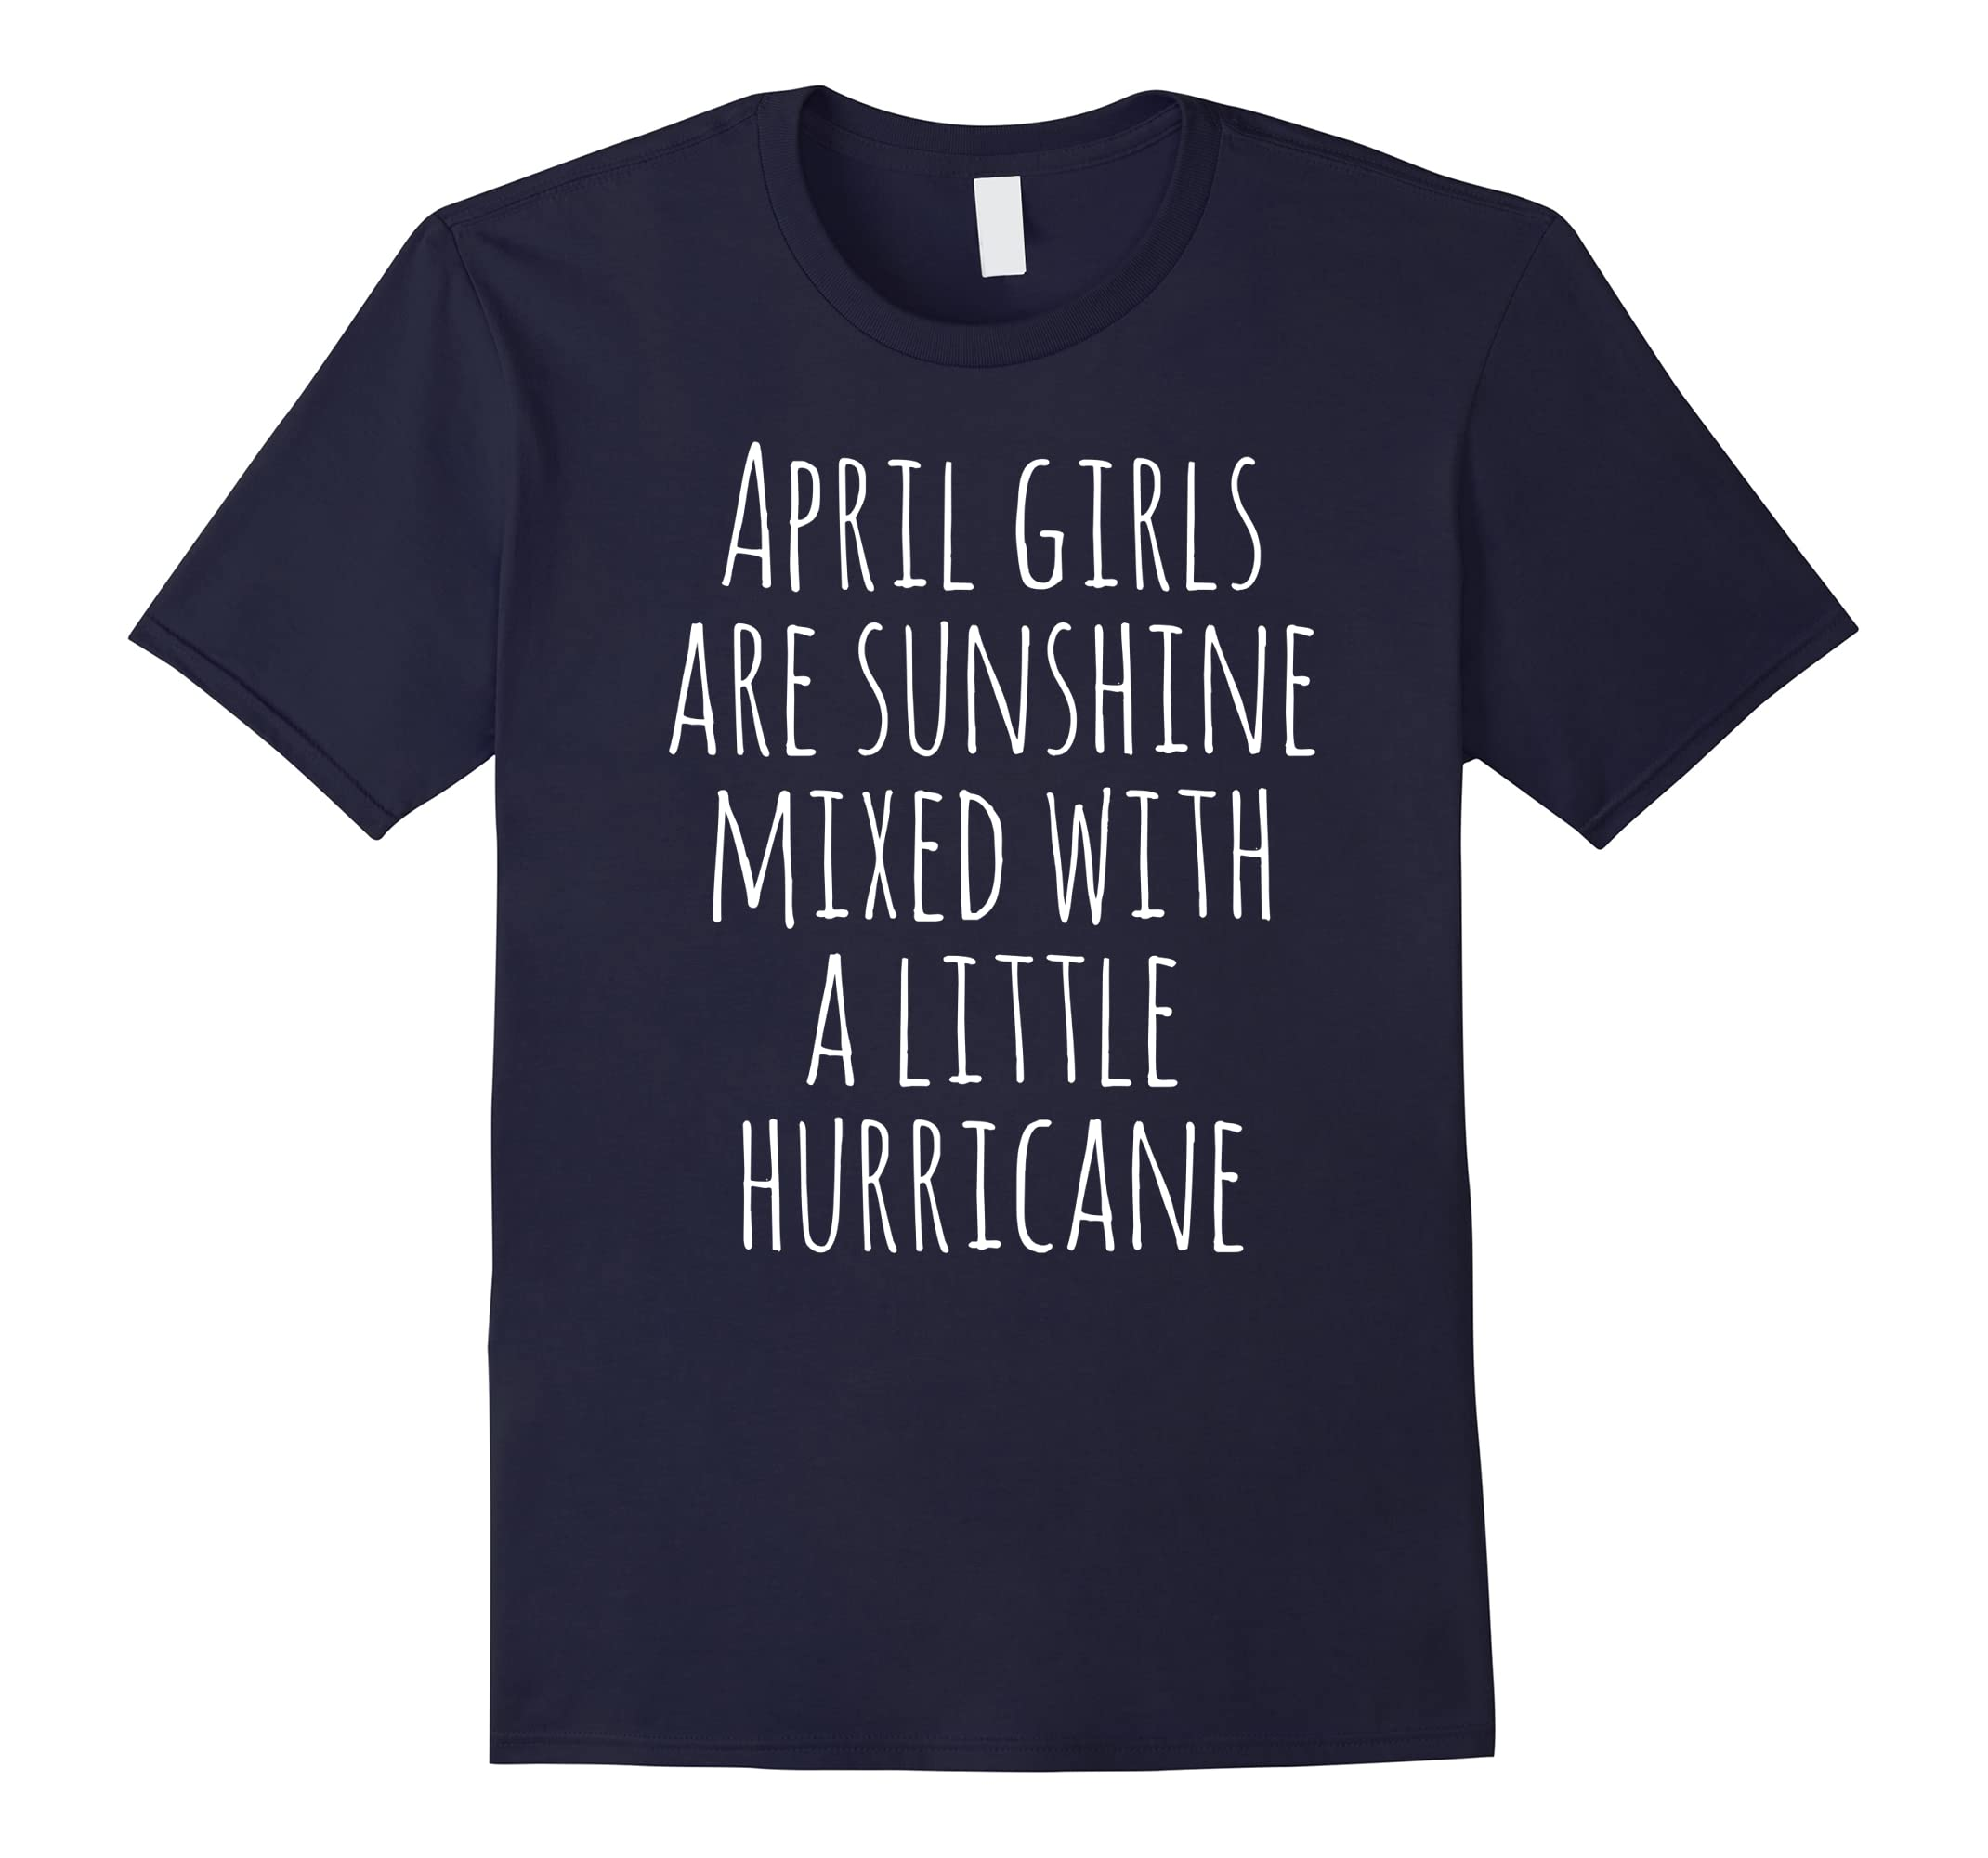 April Girls Are Sunshine Mixed With a Little Hurricane-ah my shirt one gift